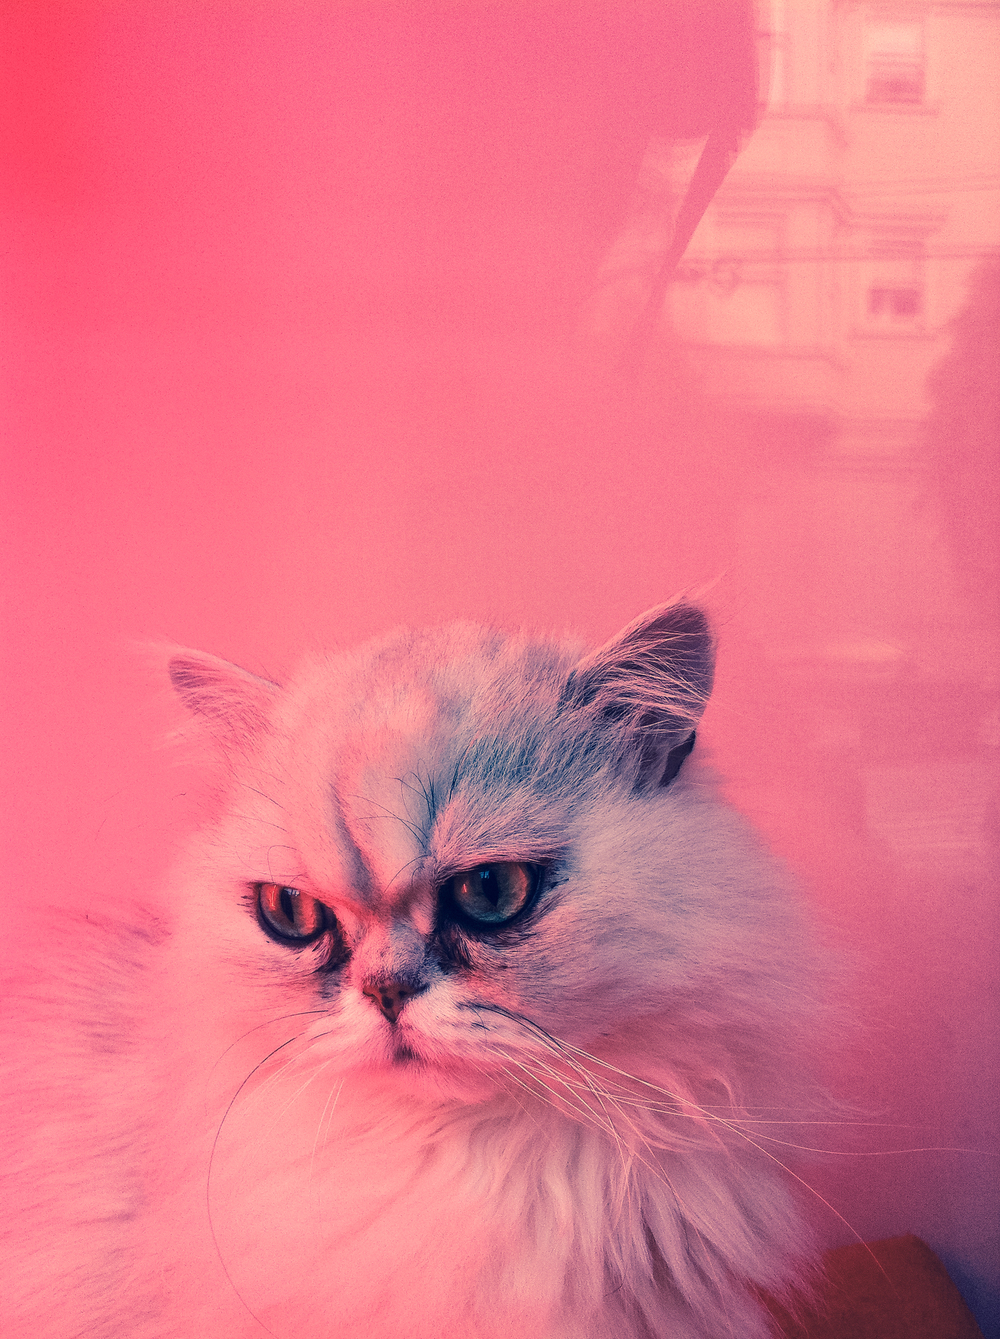 kitty in pink.